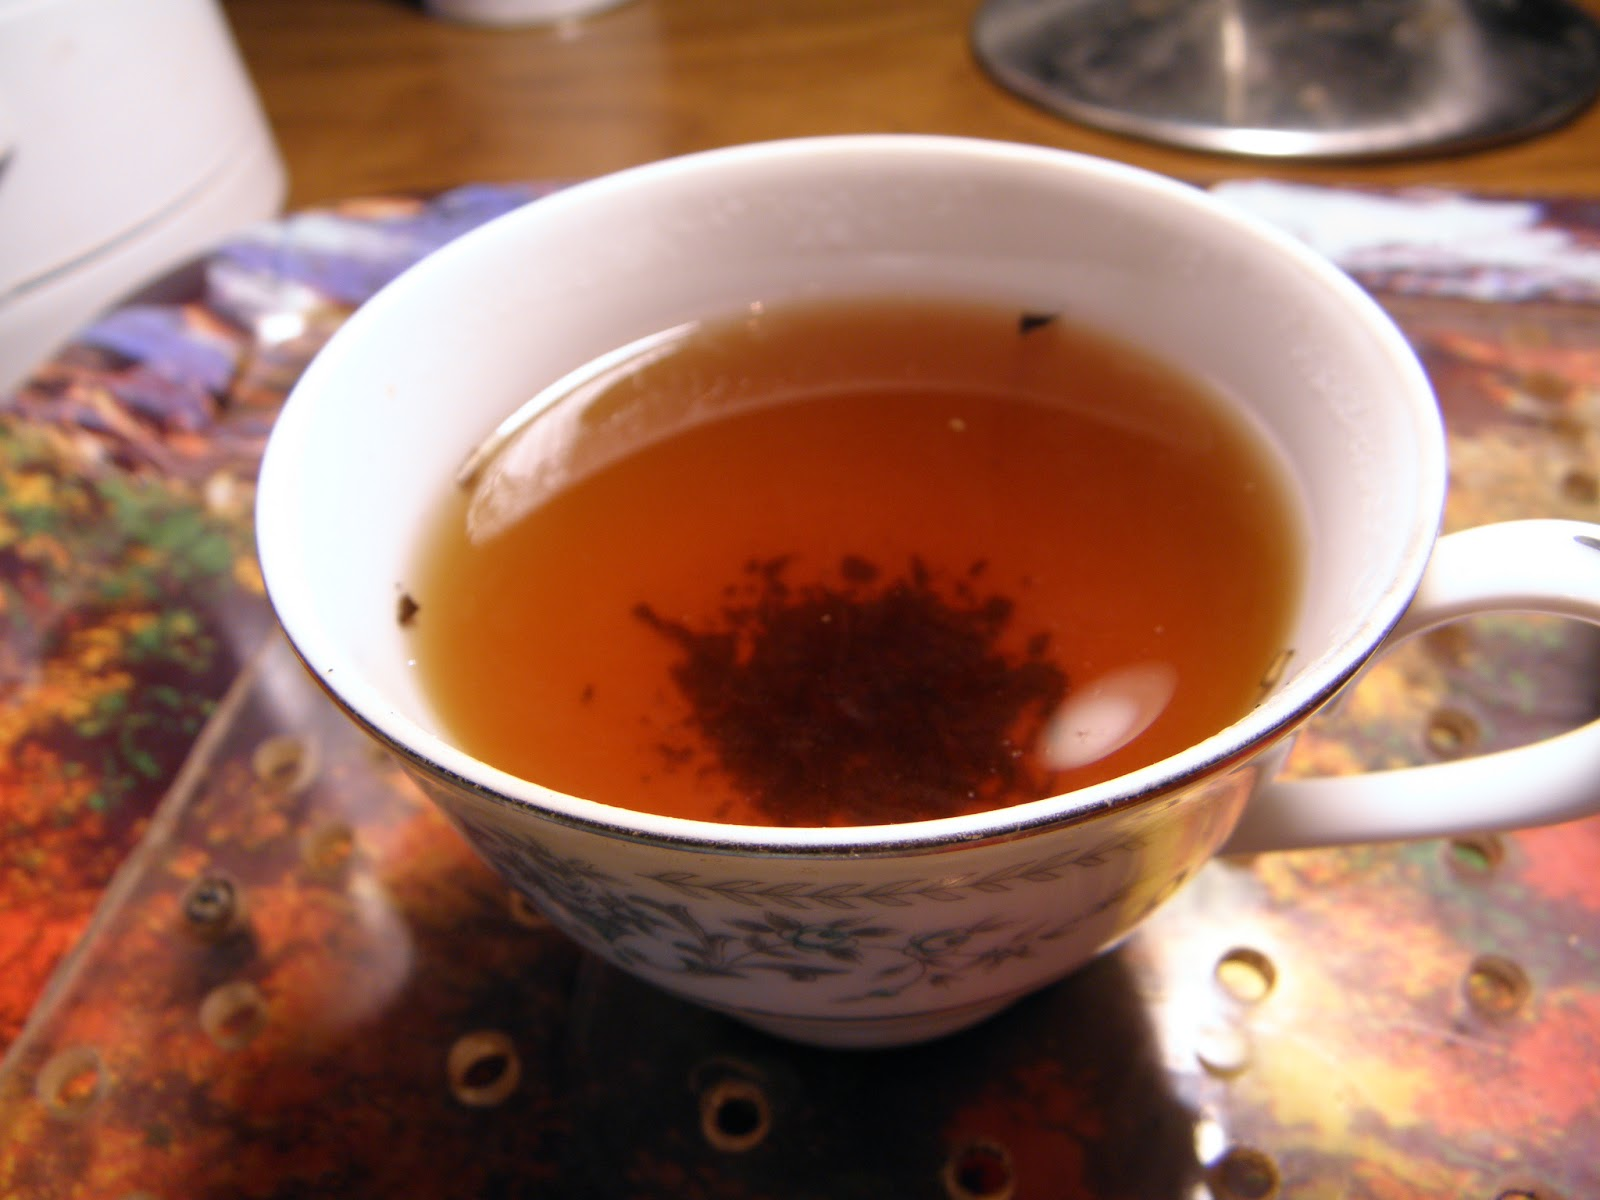 Bojenmi herbal tea - Dosent Smell Offensive Like Most Medicinal Teas Tastes Like A Roasted Tea And A Black With A Small Hint Of Smoke And Wet Cloth Slight Bitterness On The